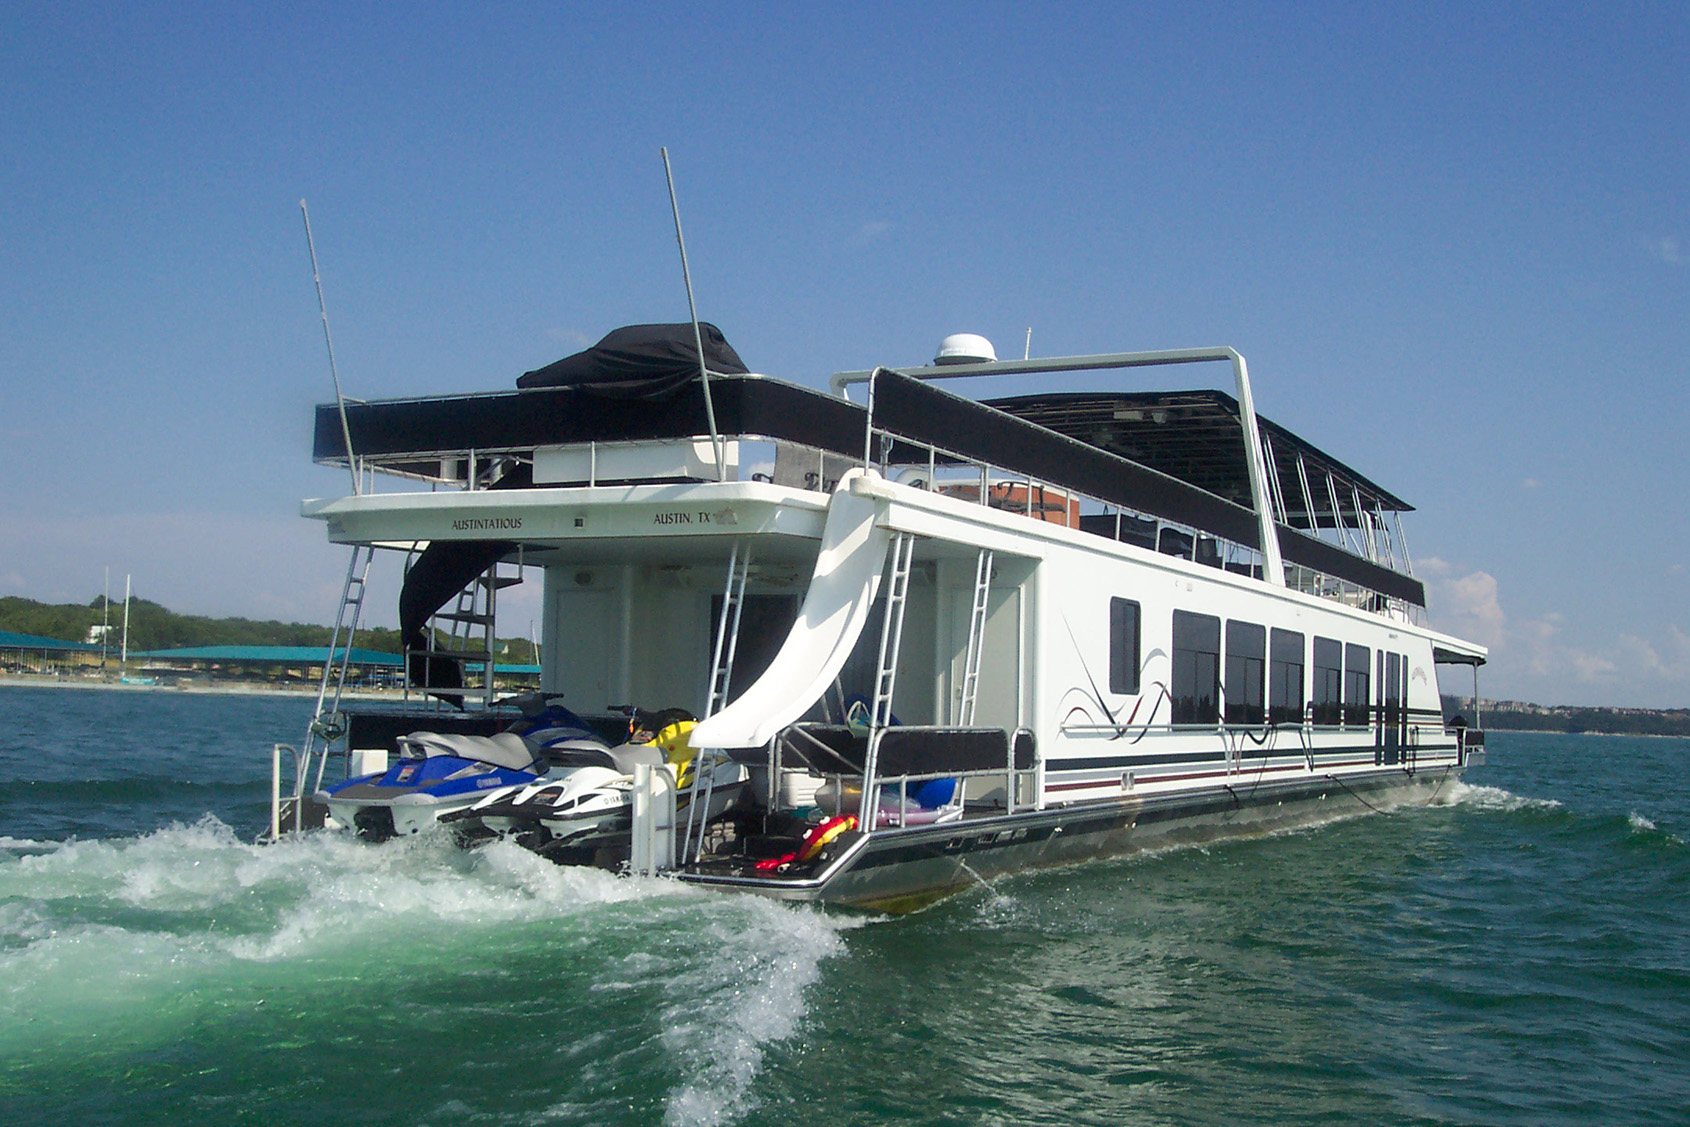 Boatrentalpricing besides Austin Boat Rentals moreover Places To Stay as well Boat Rentals in addition Lake Boat Rentals. on pontoon boat rentals lake travis